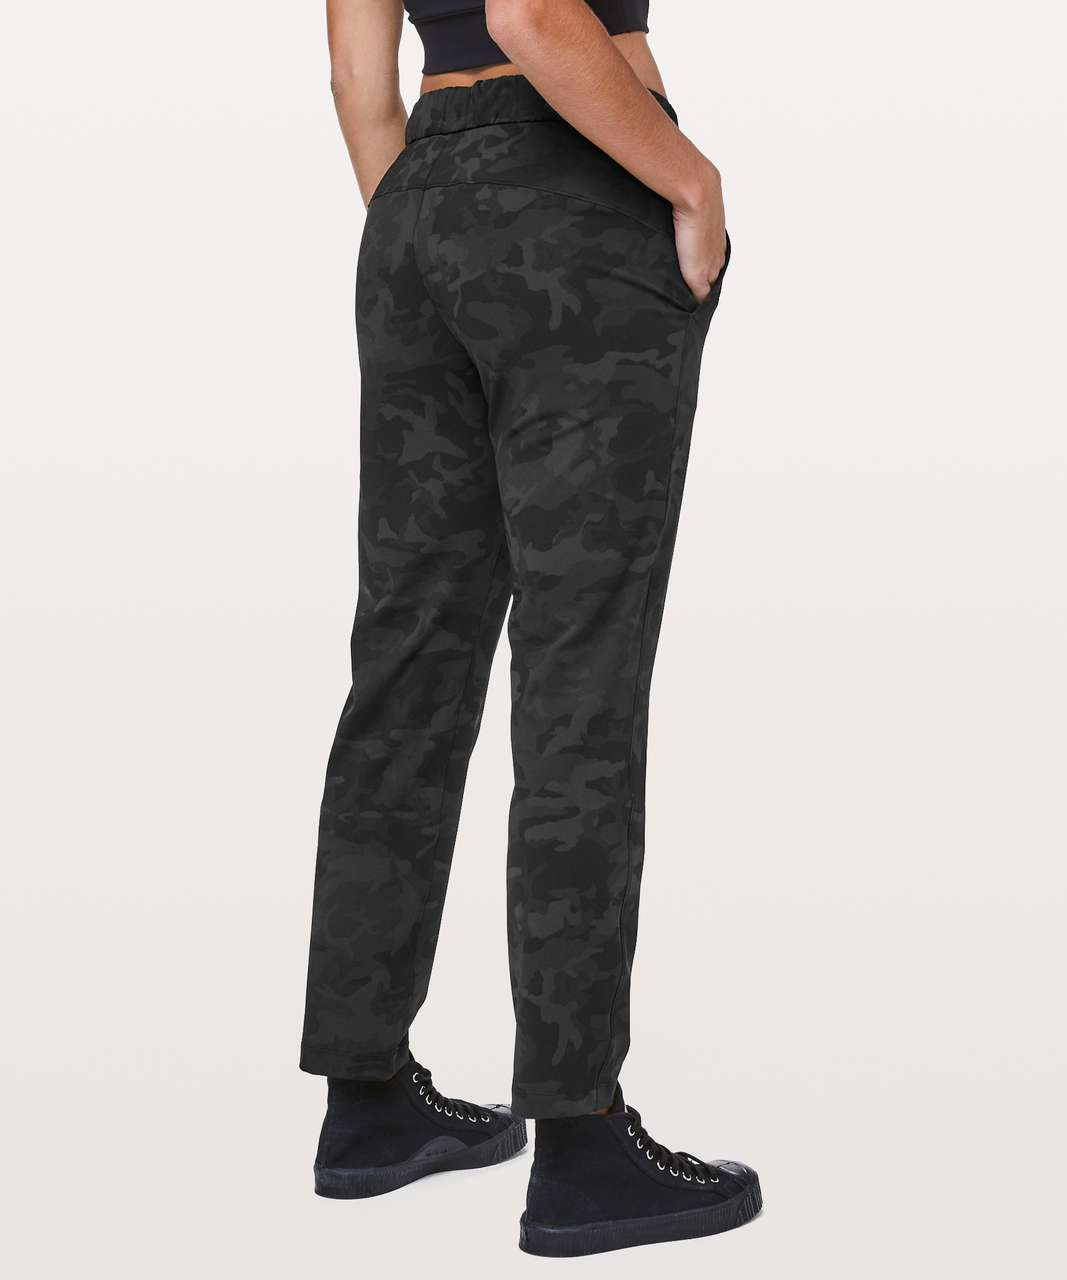 """Lululemon On The Fly Pant *28"""" - Incognito Camo Multi Grey / Coal"""